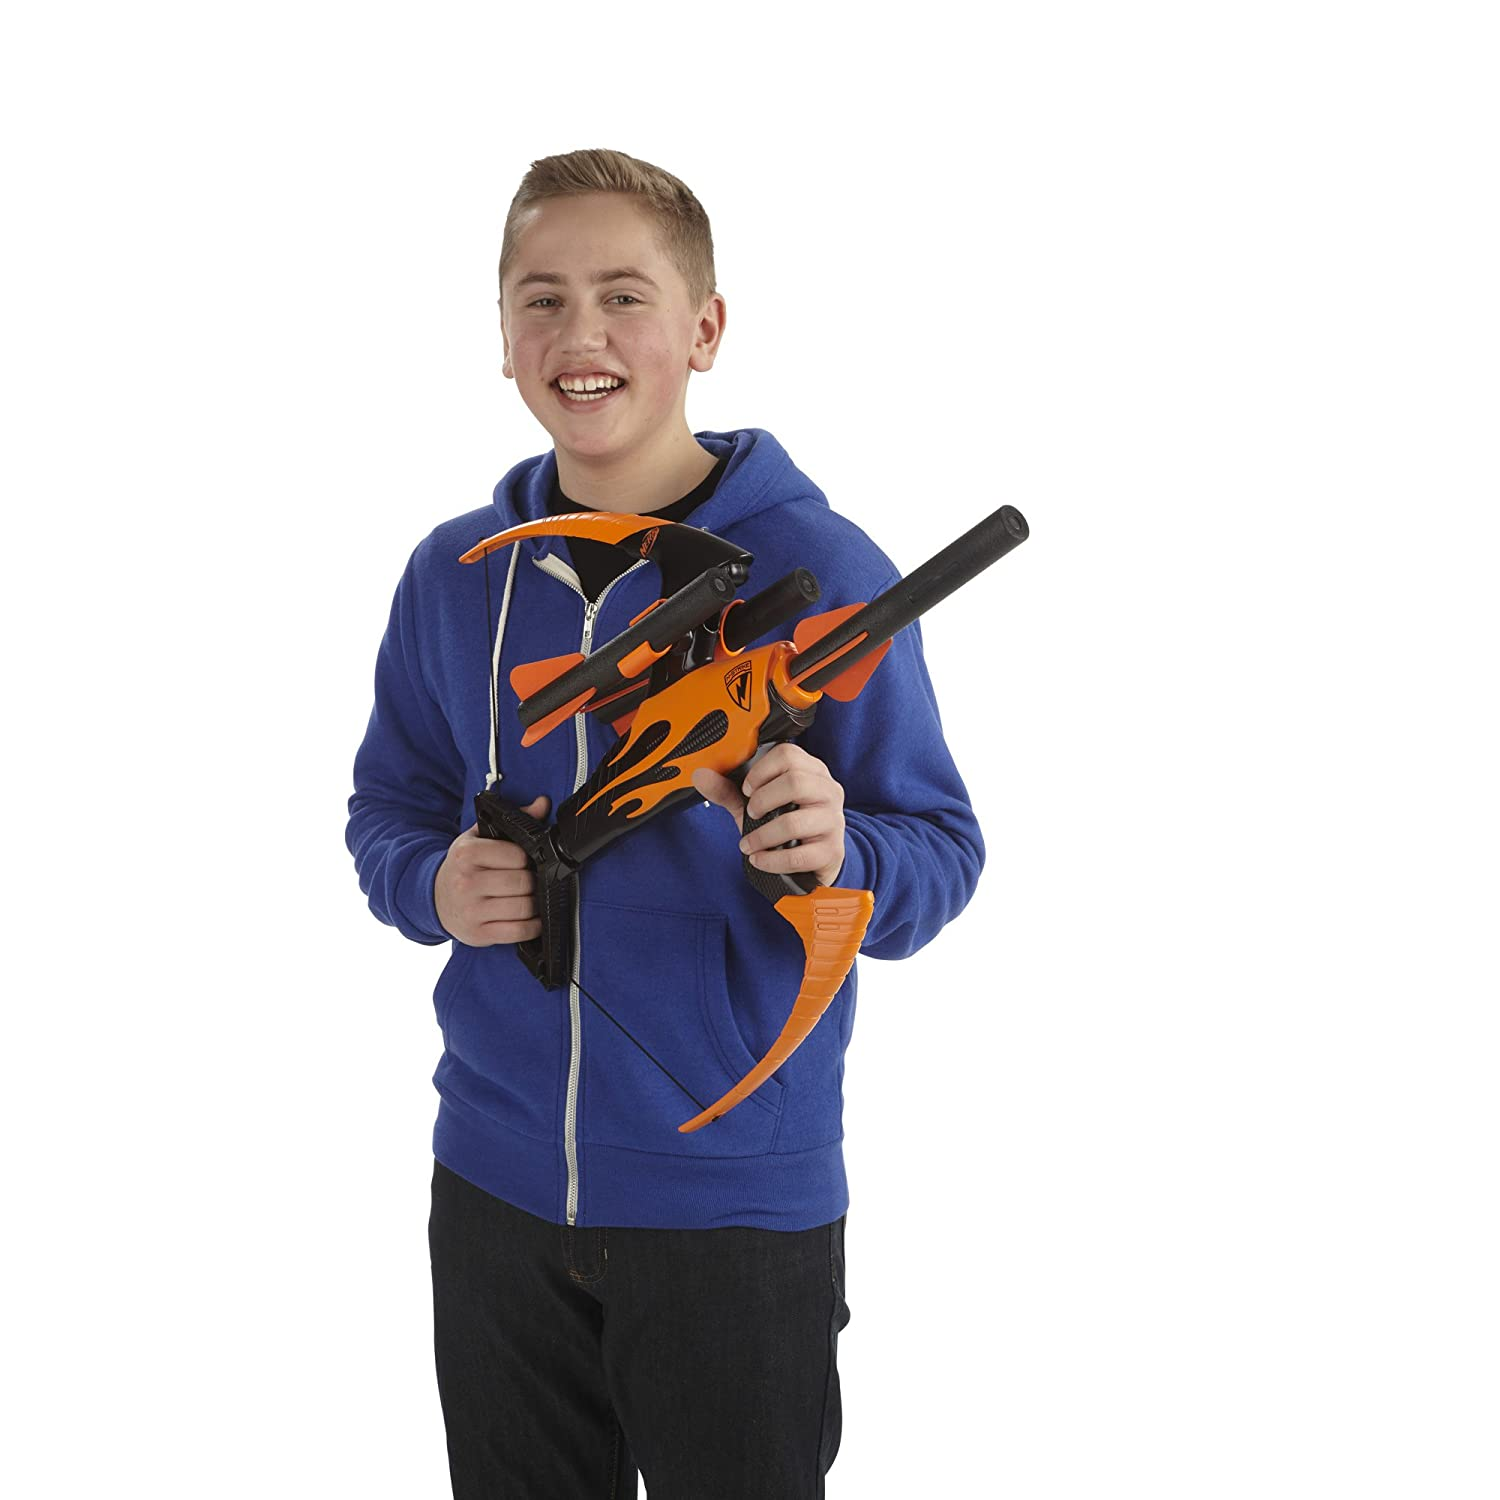 Toys For Boys Age 13 : Gift ideas for boys of all ages